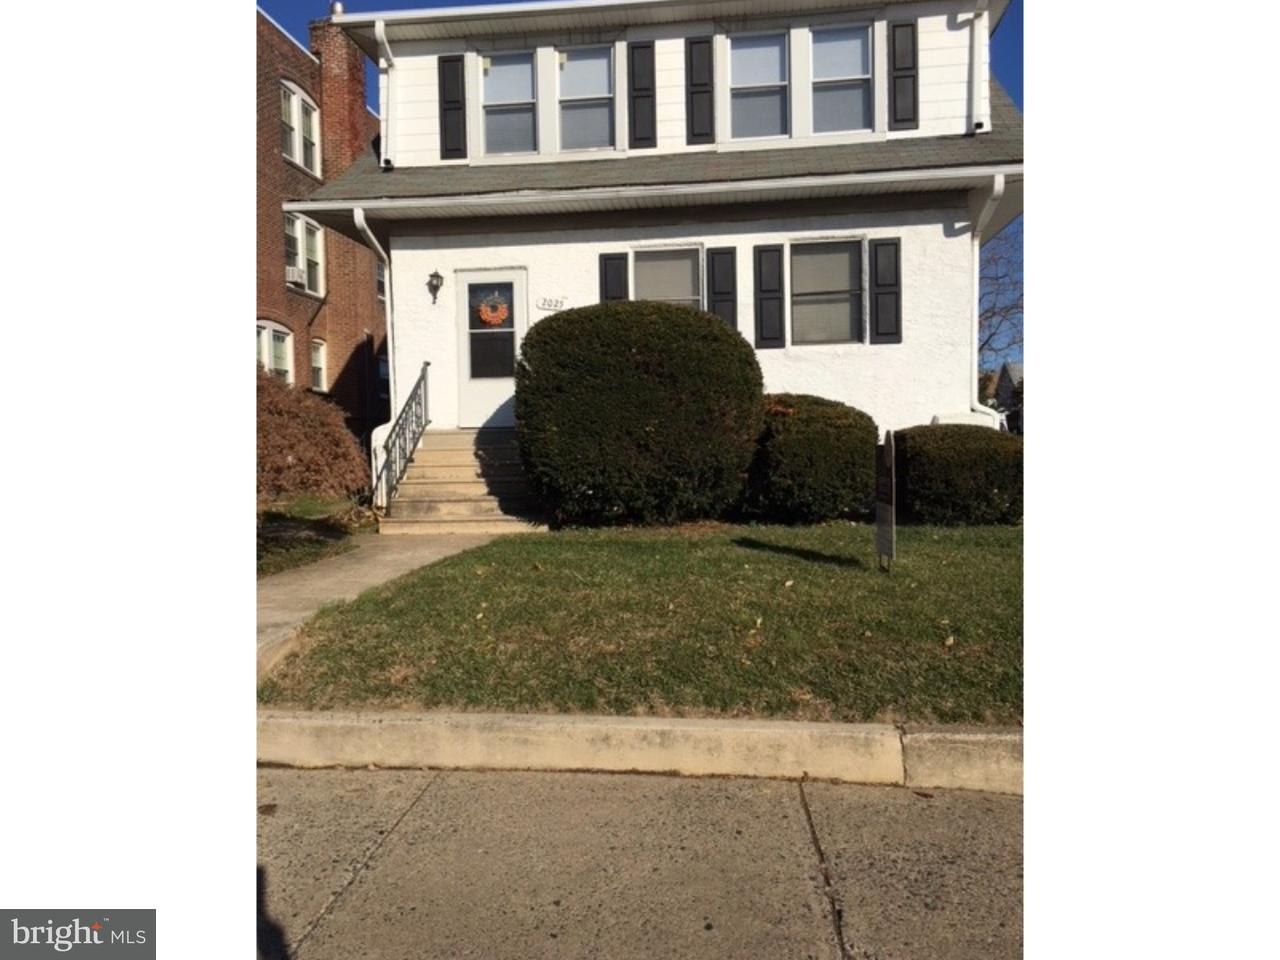 Single Family Home for Rent at 2025 E DARBY RD #2ND FL Havertown, Pennsylvania 19083 United States